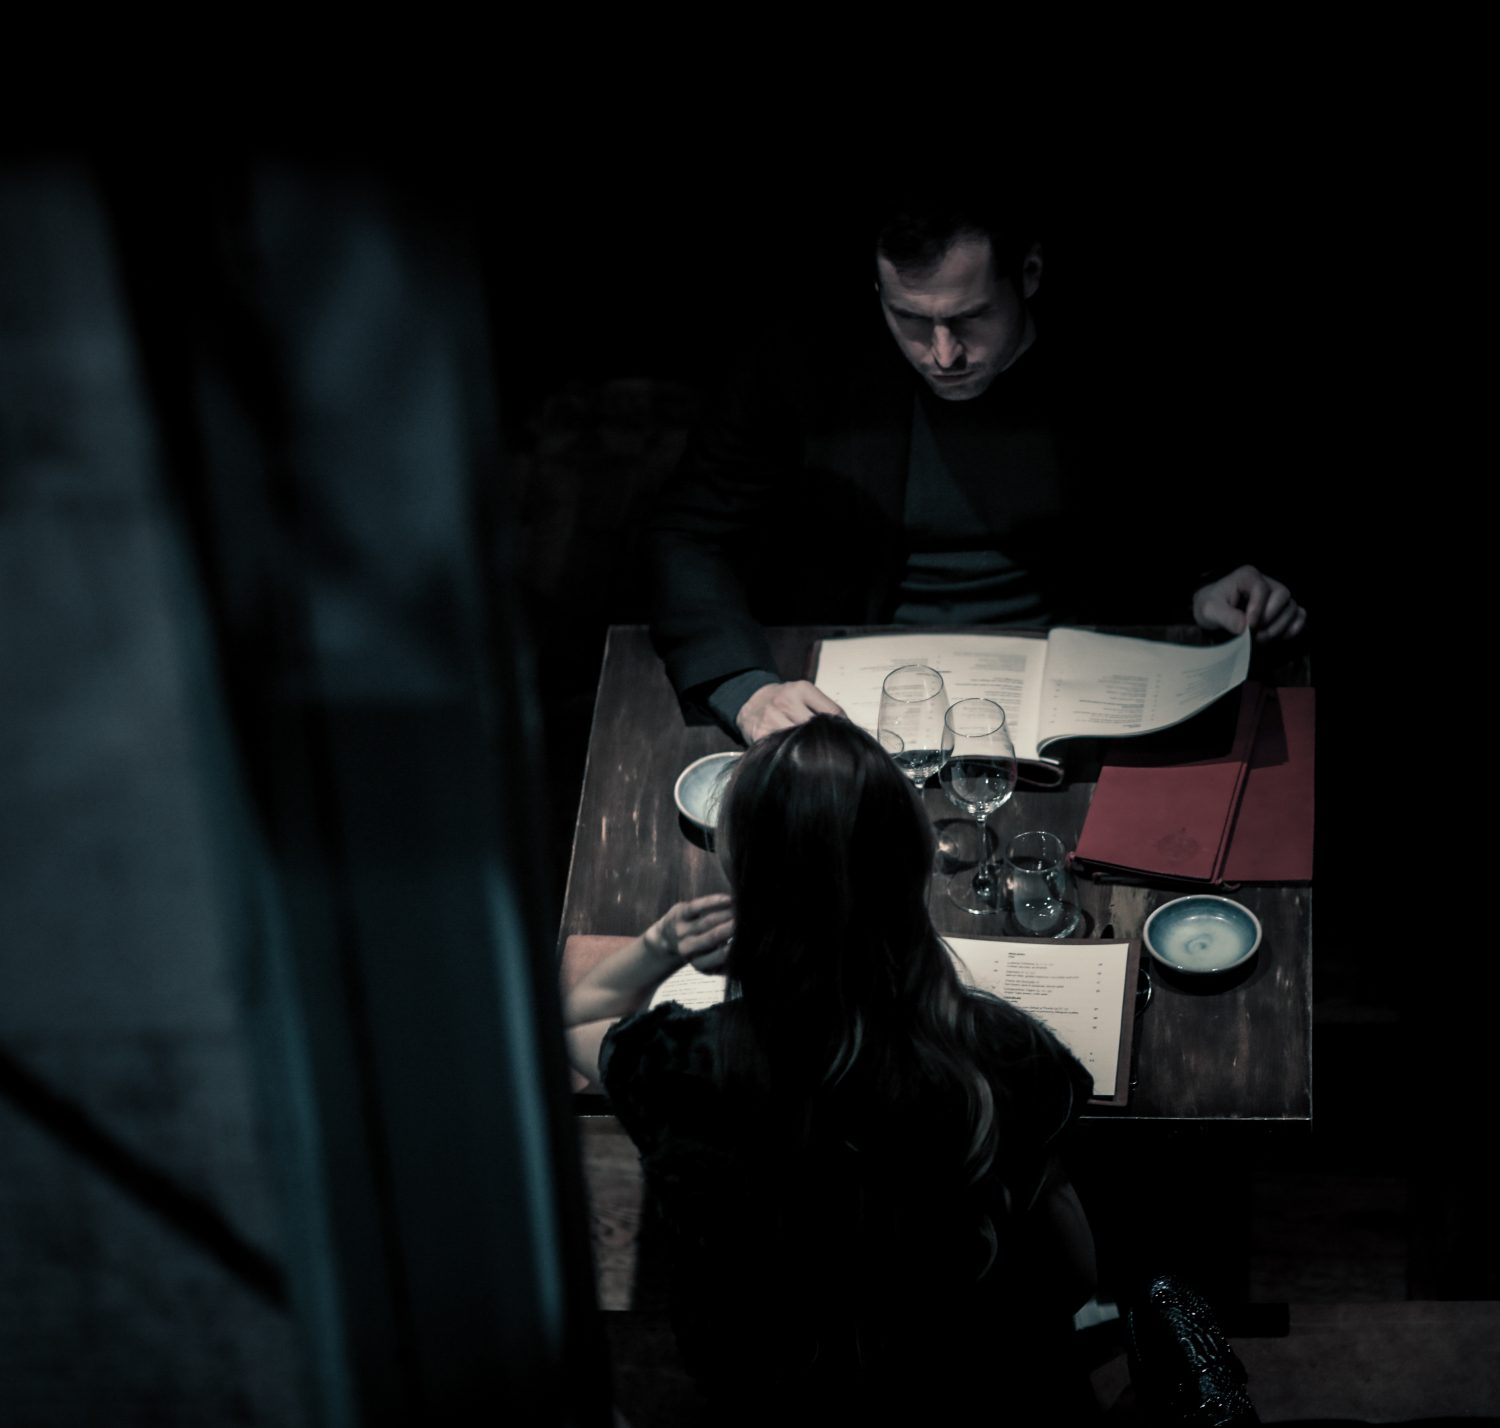 In the Dark Of The Night, il progetto fotografico di Edo Zollo | Collater.al 21